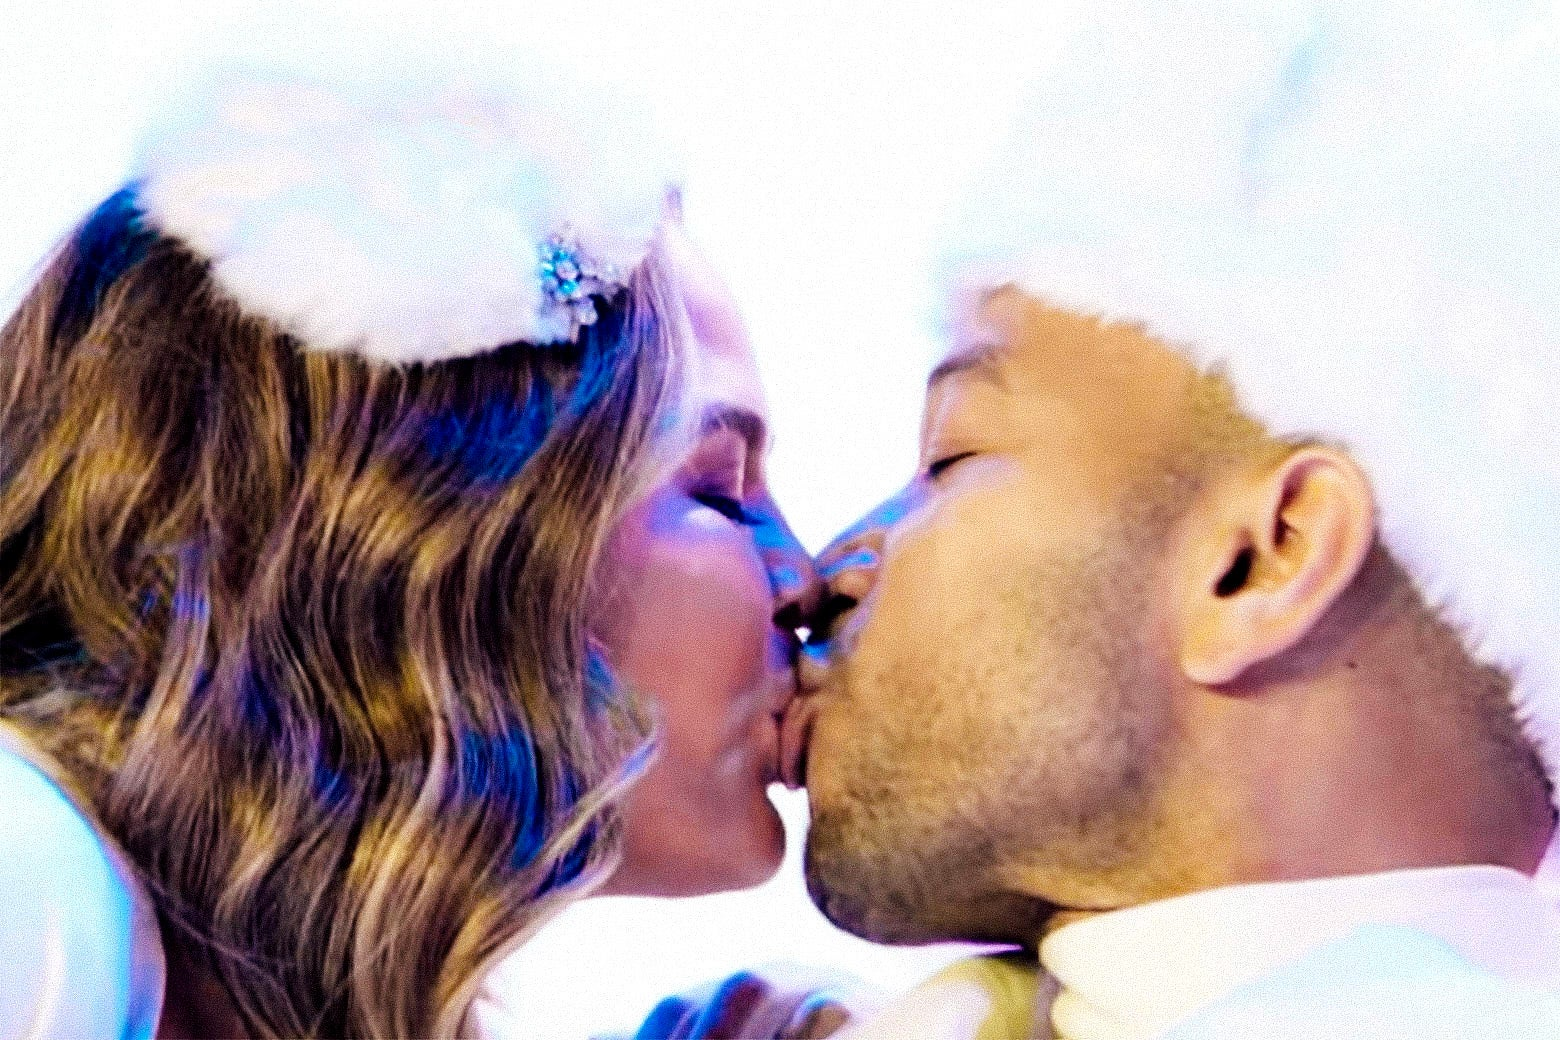 Chrissy Teigen and John Legend kiss while wearing Santa outfits.